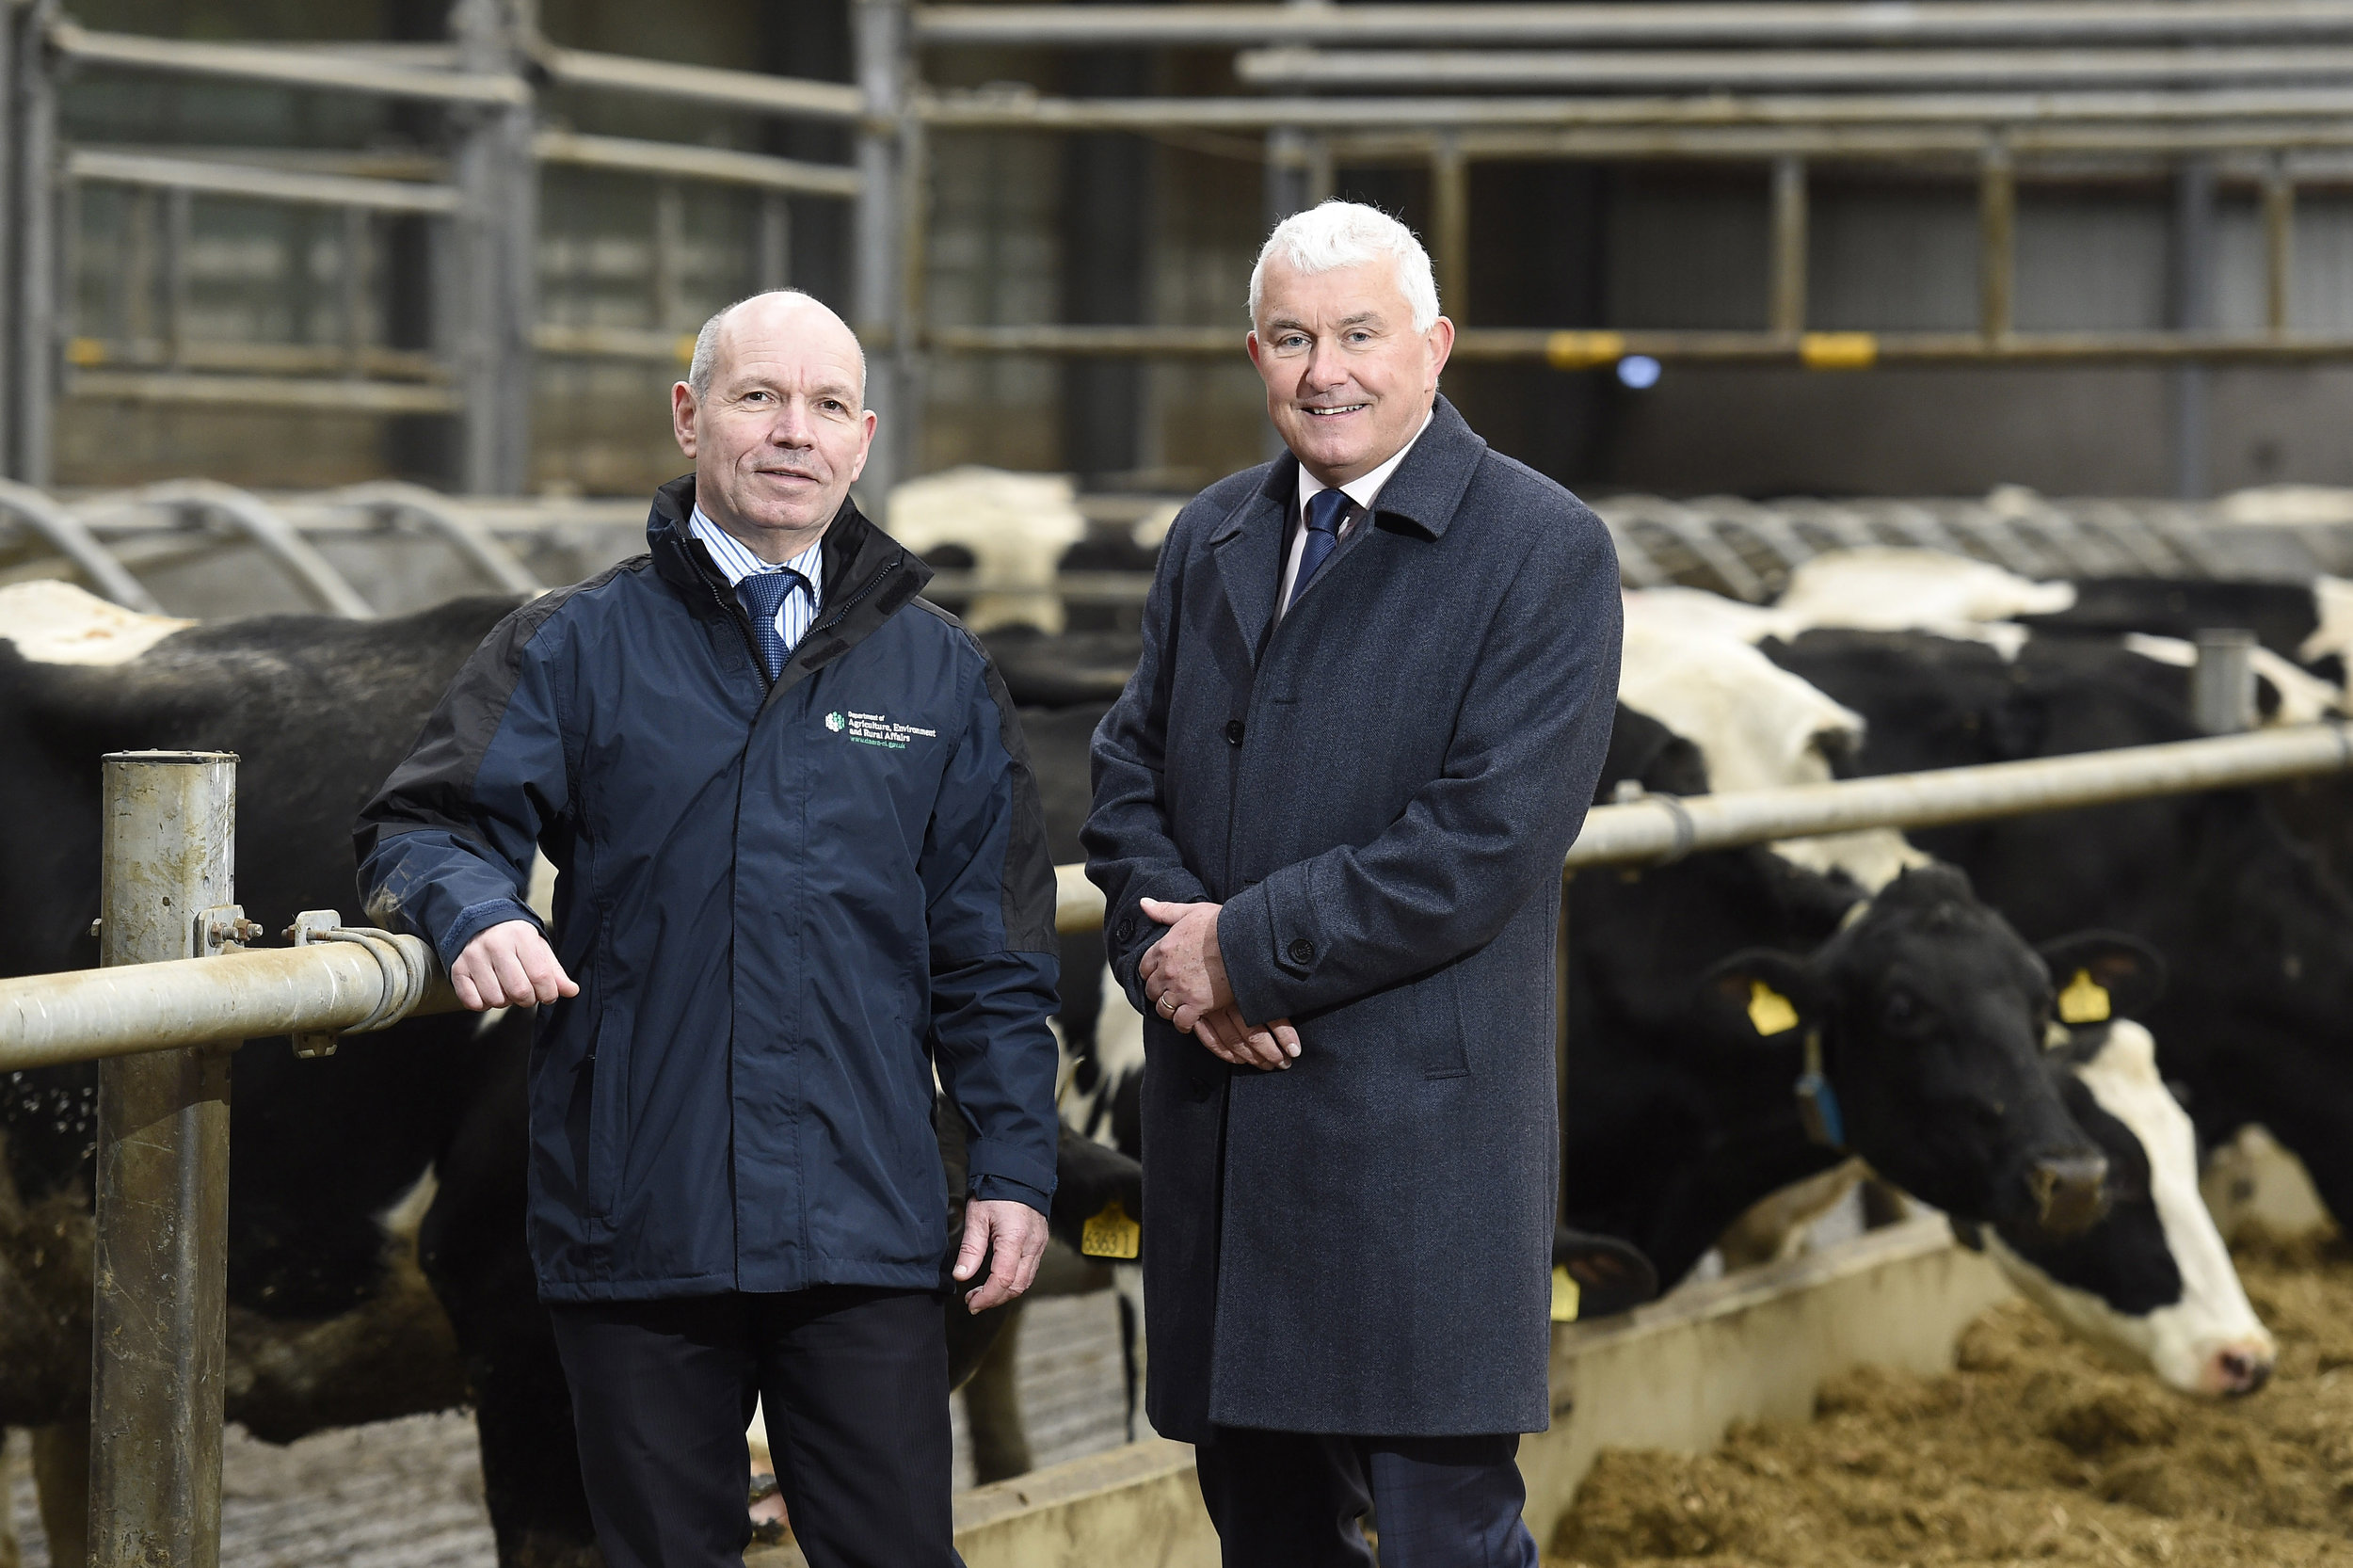 L-R Paul McGurnaghan, Director of Digital Services, Department of Agriculture, Environment and Rural Affairs (DAERA) with Brendan Monaghan, CEO at Neueda.